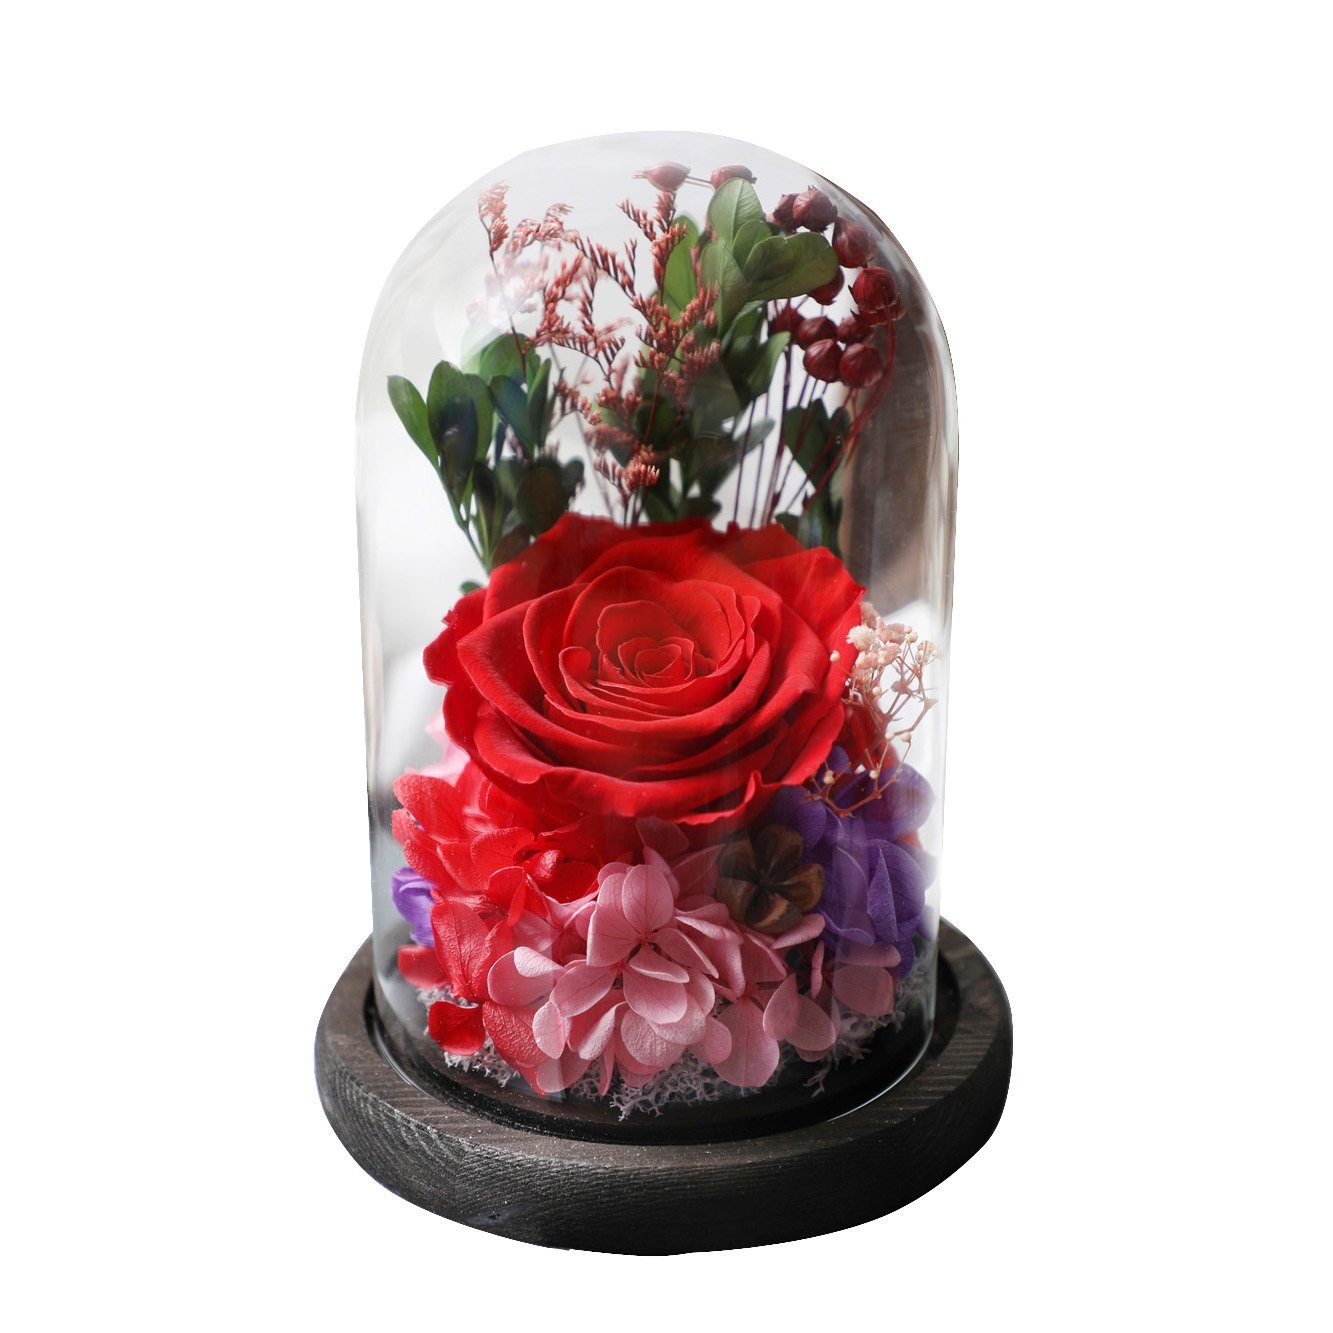 Amoleya 4.9 Inch Handmade Preserved Rose Enchanted Rose that Lasts in Glass Dome,Red